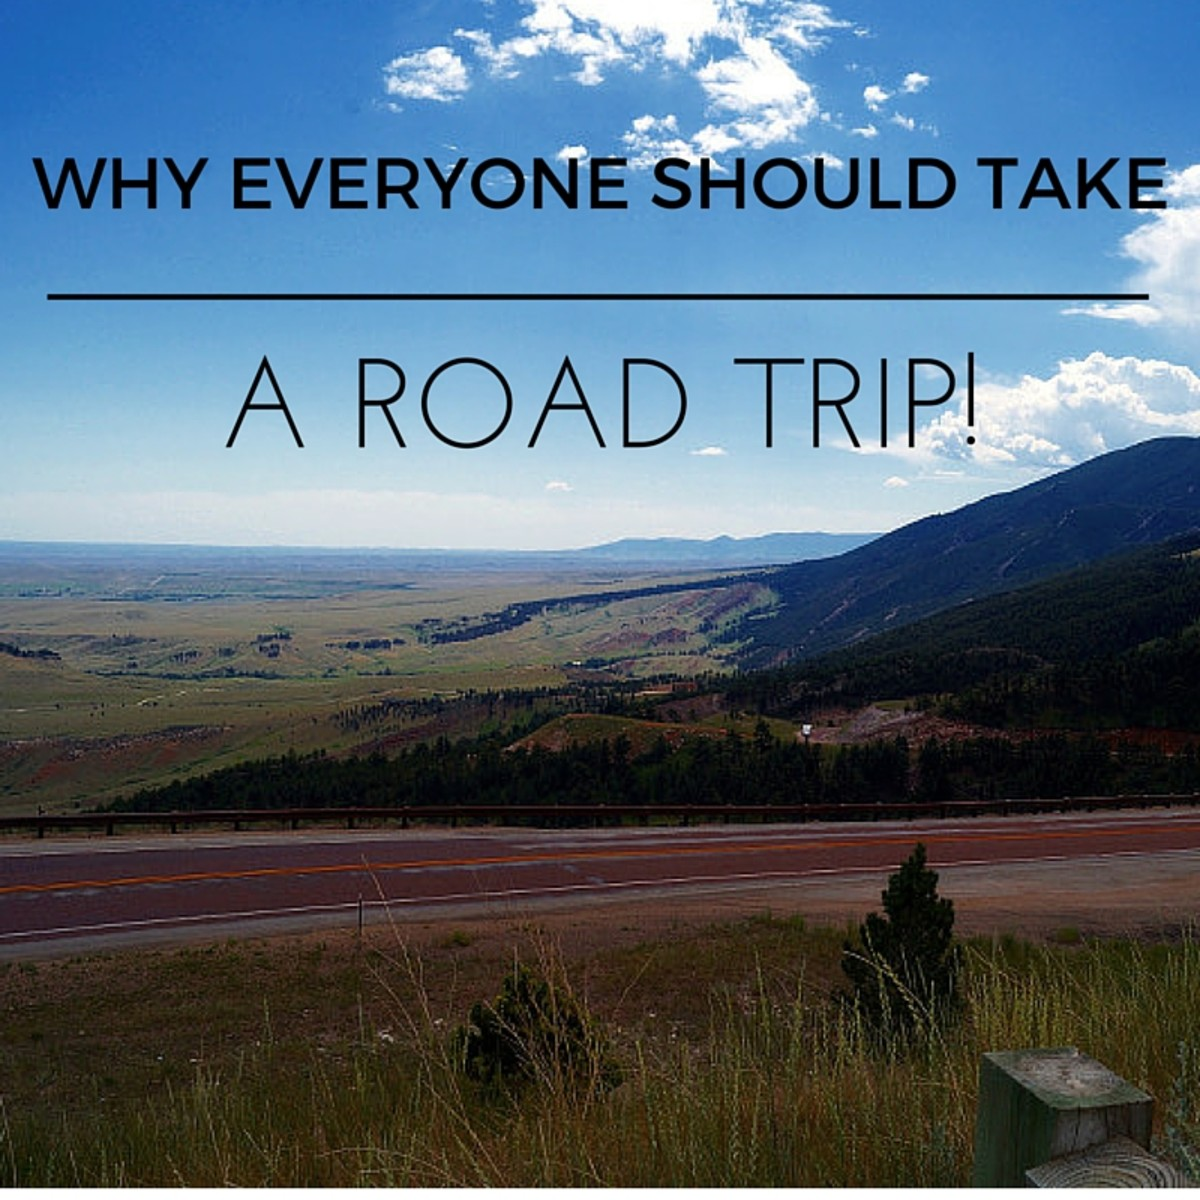 Why Everyone Should Take a Road Trip